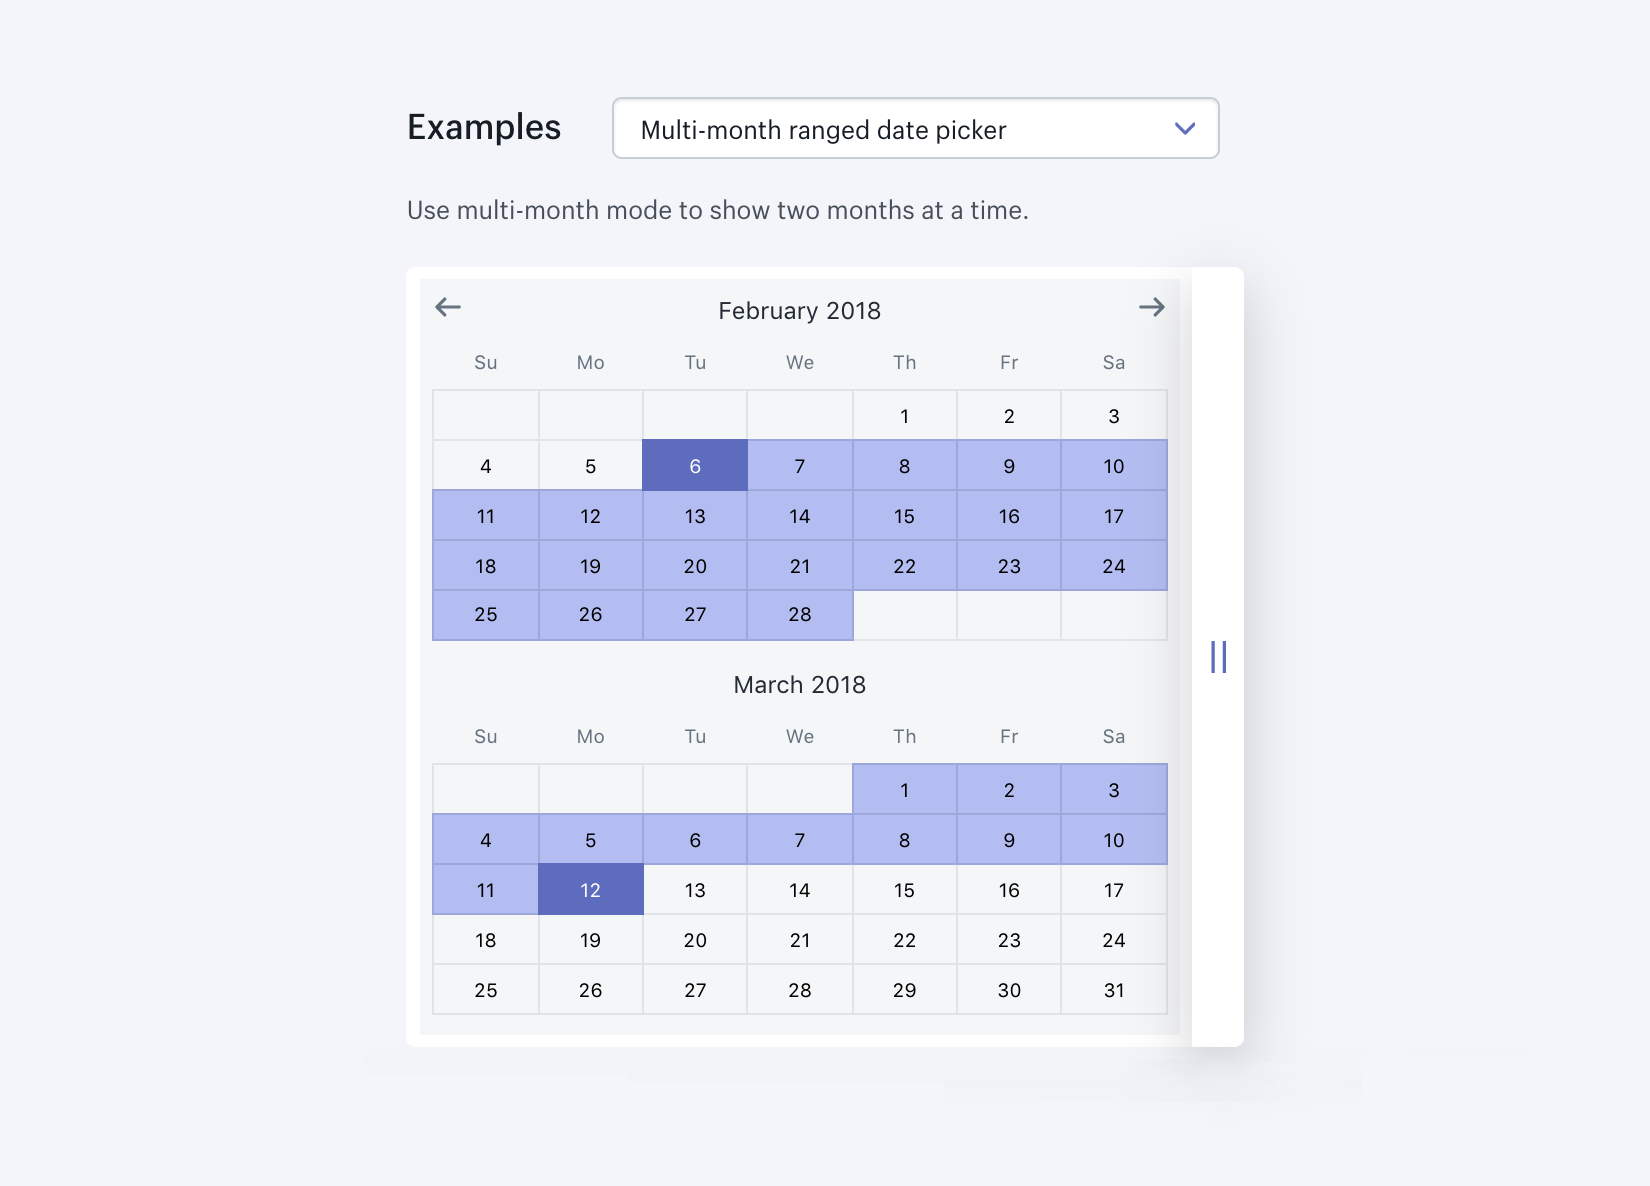 Date picker from Shopify's Design System (Polaris)